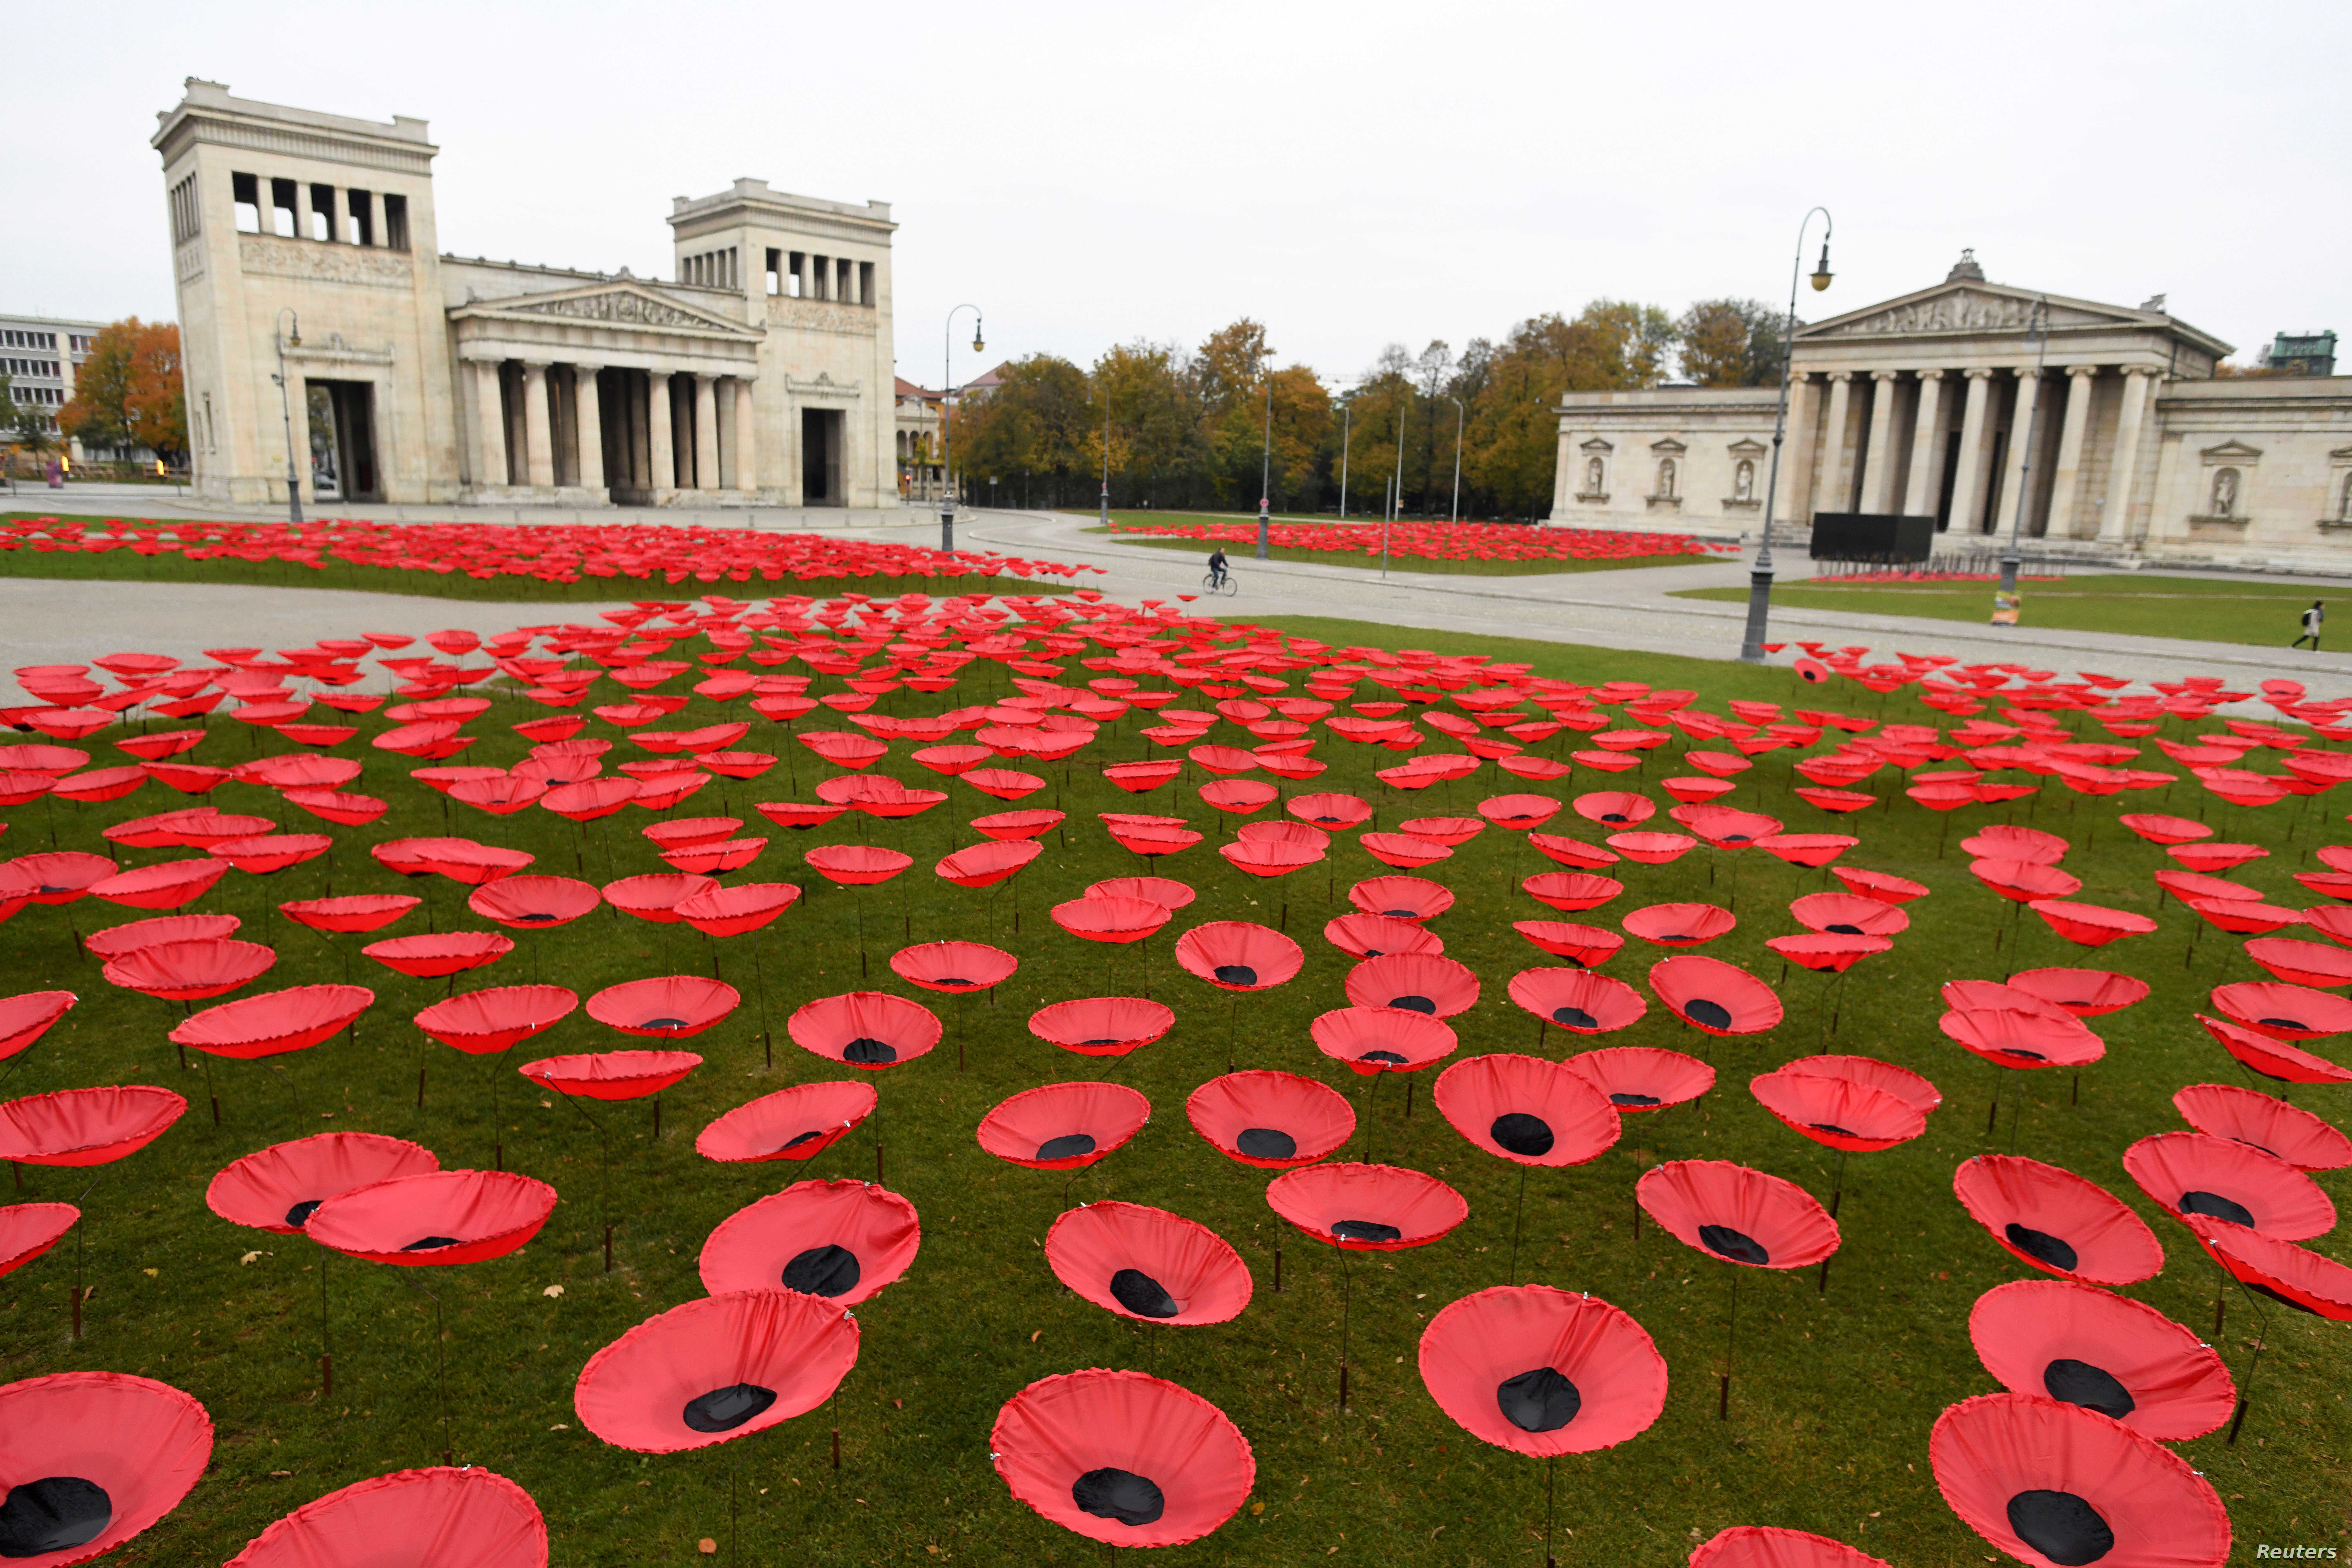 Poppy flowers are seen at Koenigsplatz in Munich, Germany, November 3, 2018, as Europe prepares to mark the centenary of the ending of World War I.